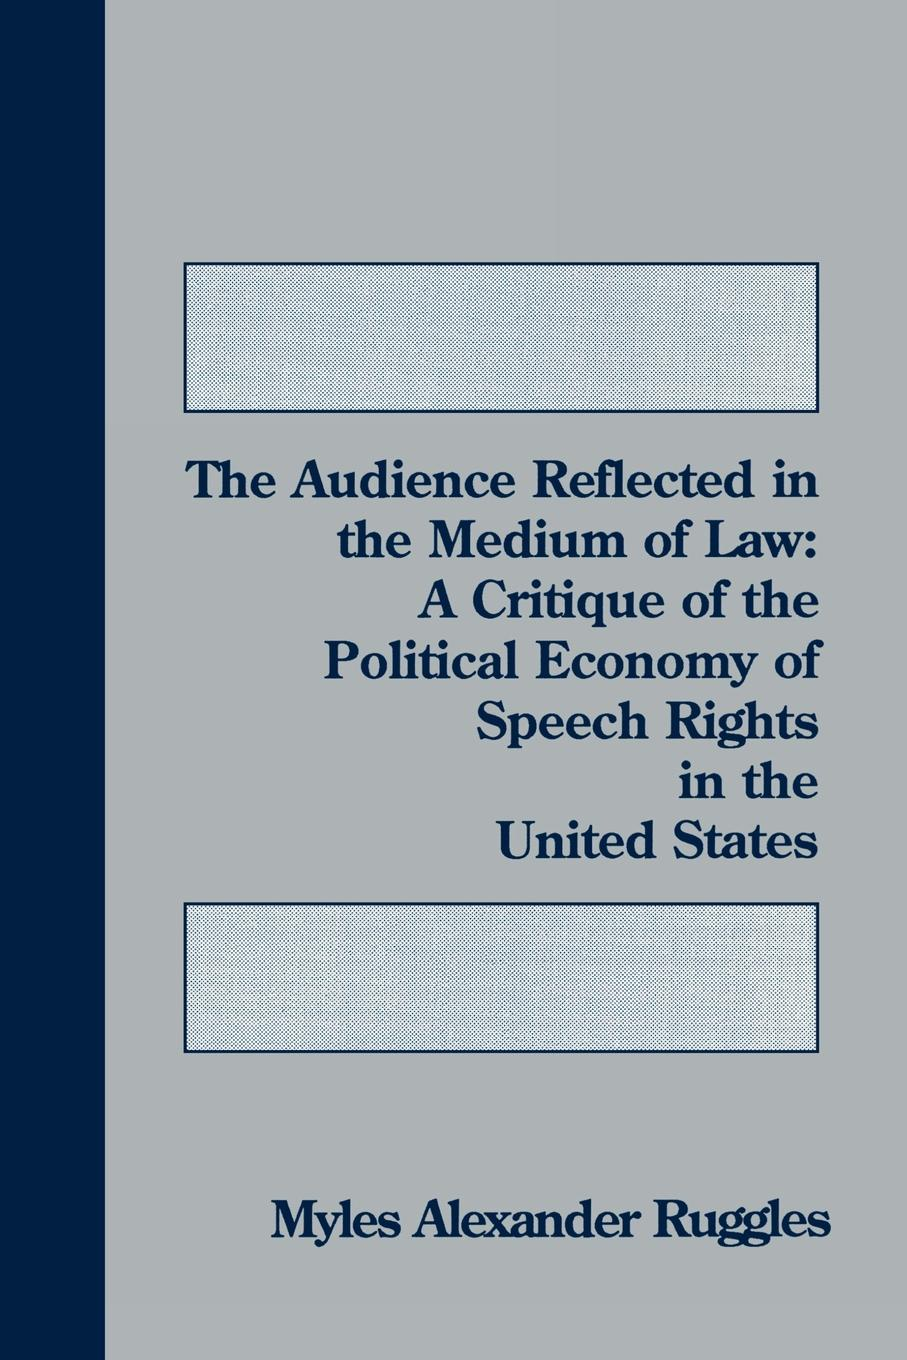 Myles Alexander Ruggles The Audience Reflected in the Medium of Law. A Critique Political Economy Speech Rights United States